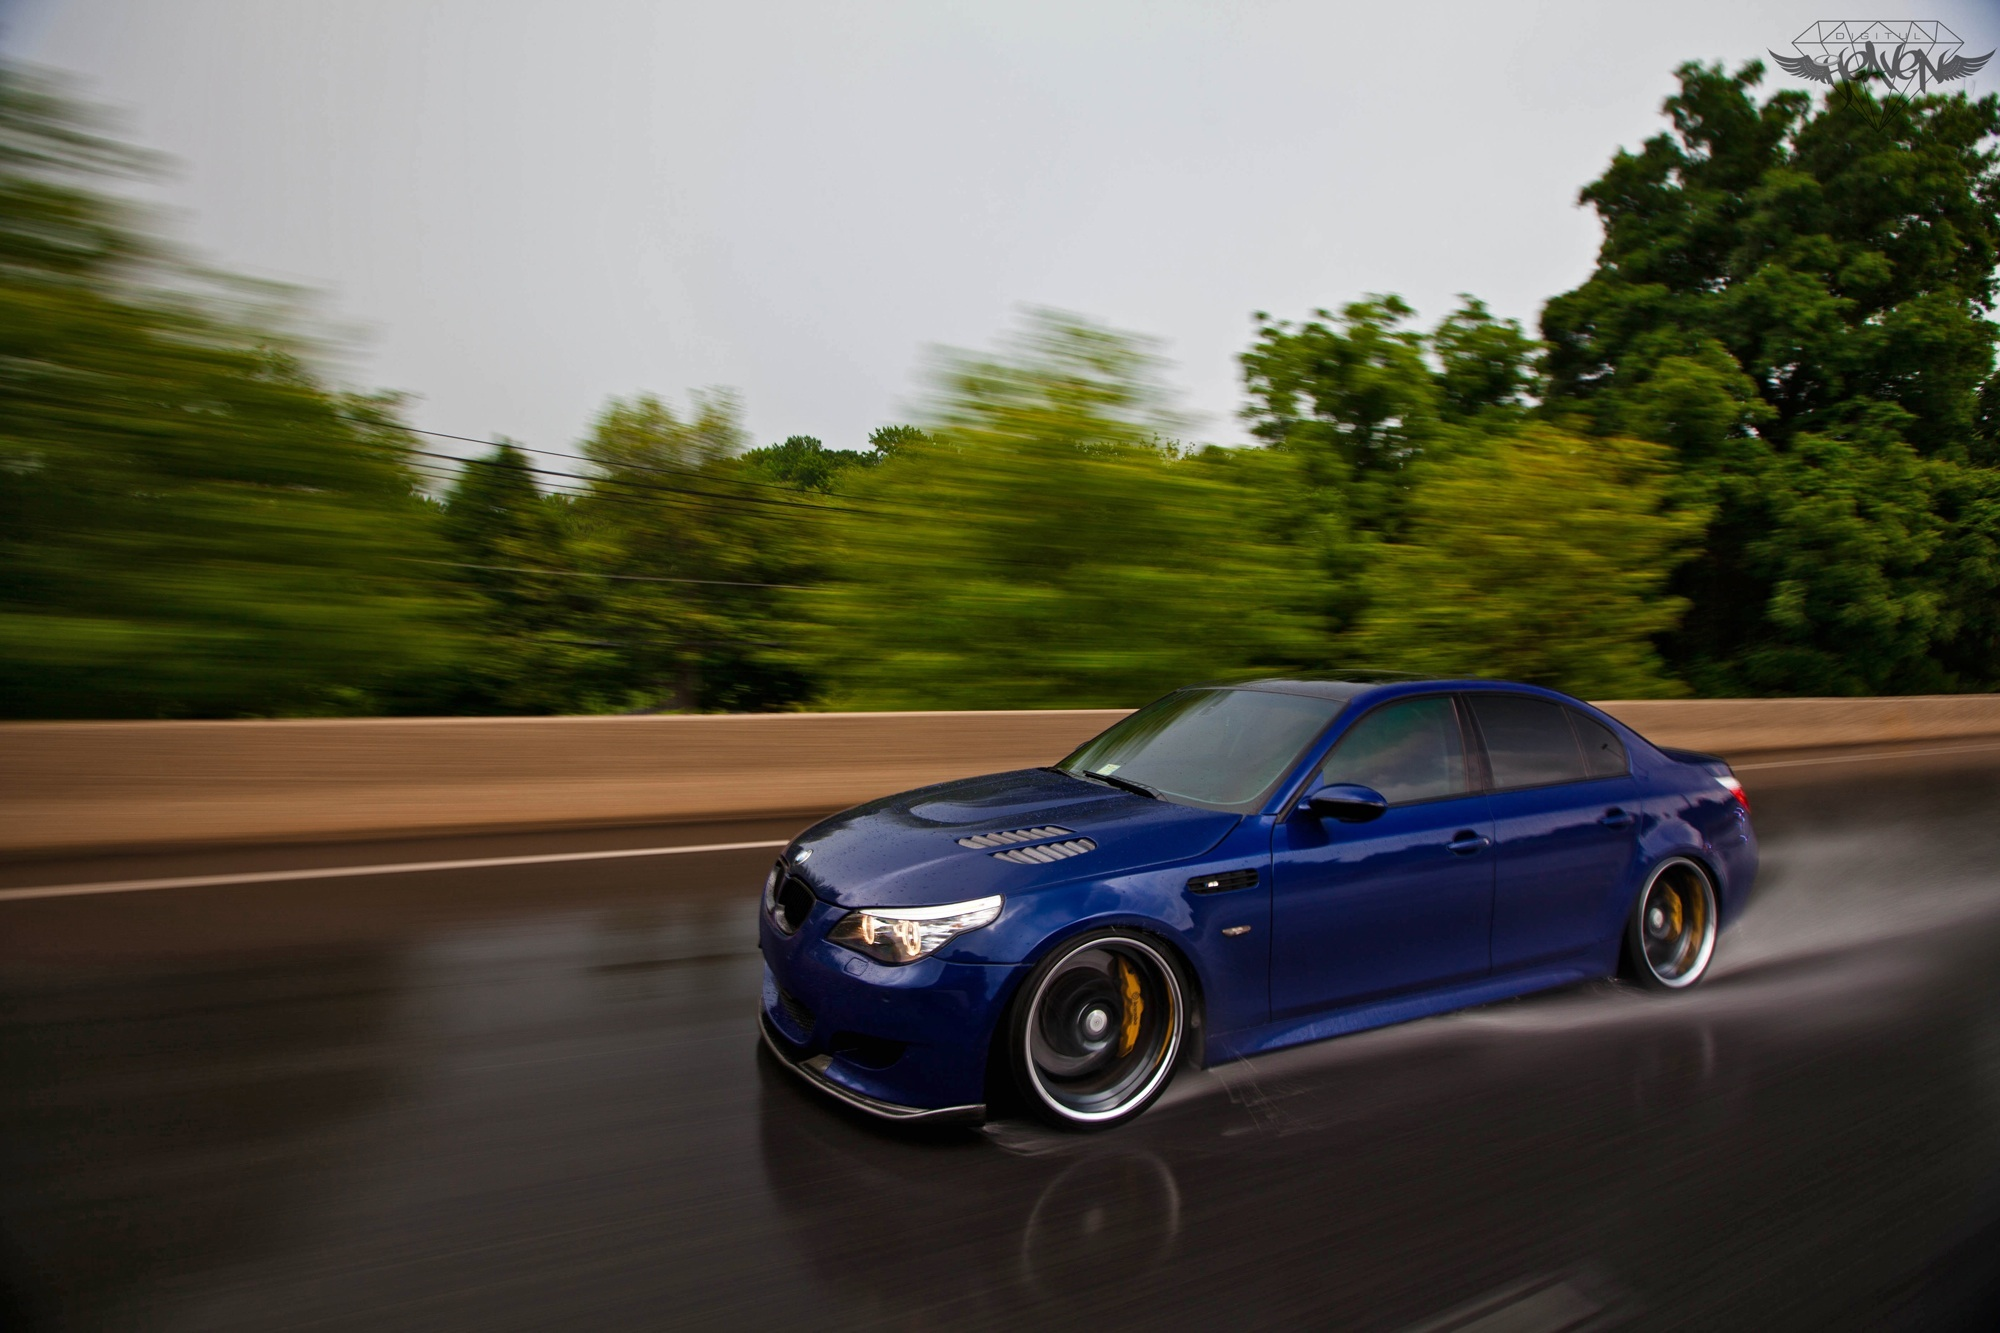 2006 interlagos blue bmw m5 e60 pictures mods upgrades. Black Bedroom Furniture Sets. Home Design Ideas